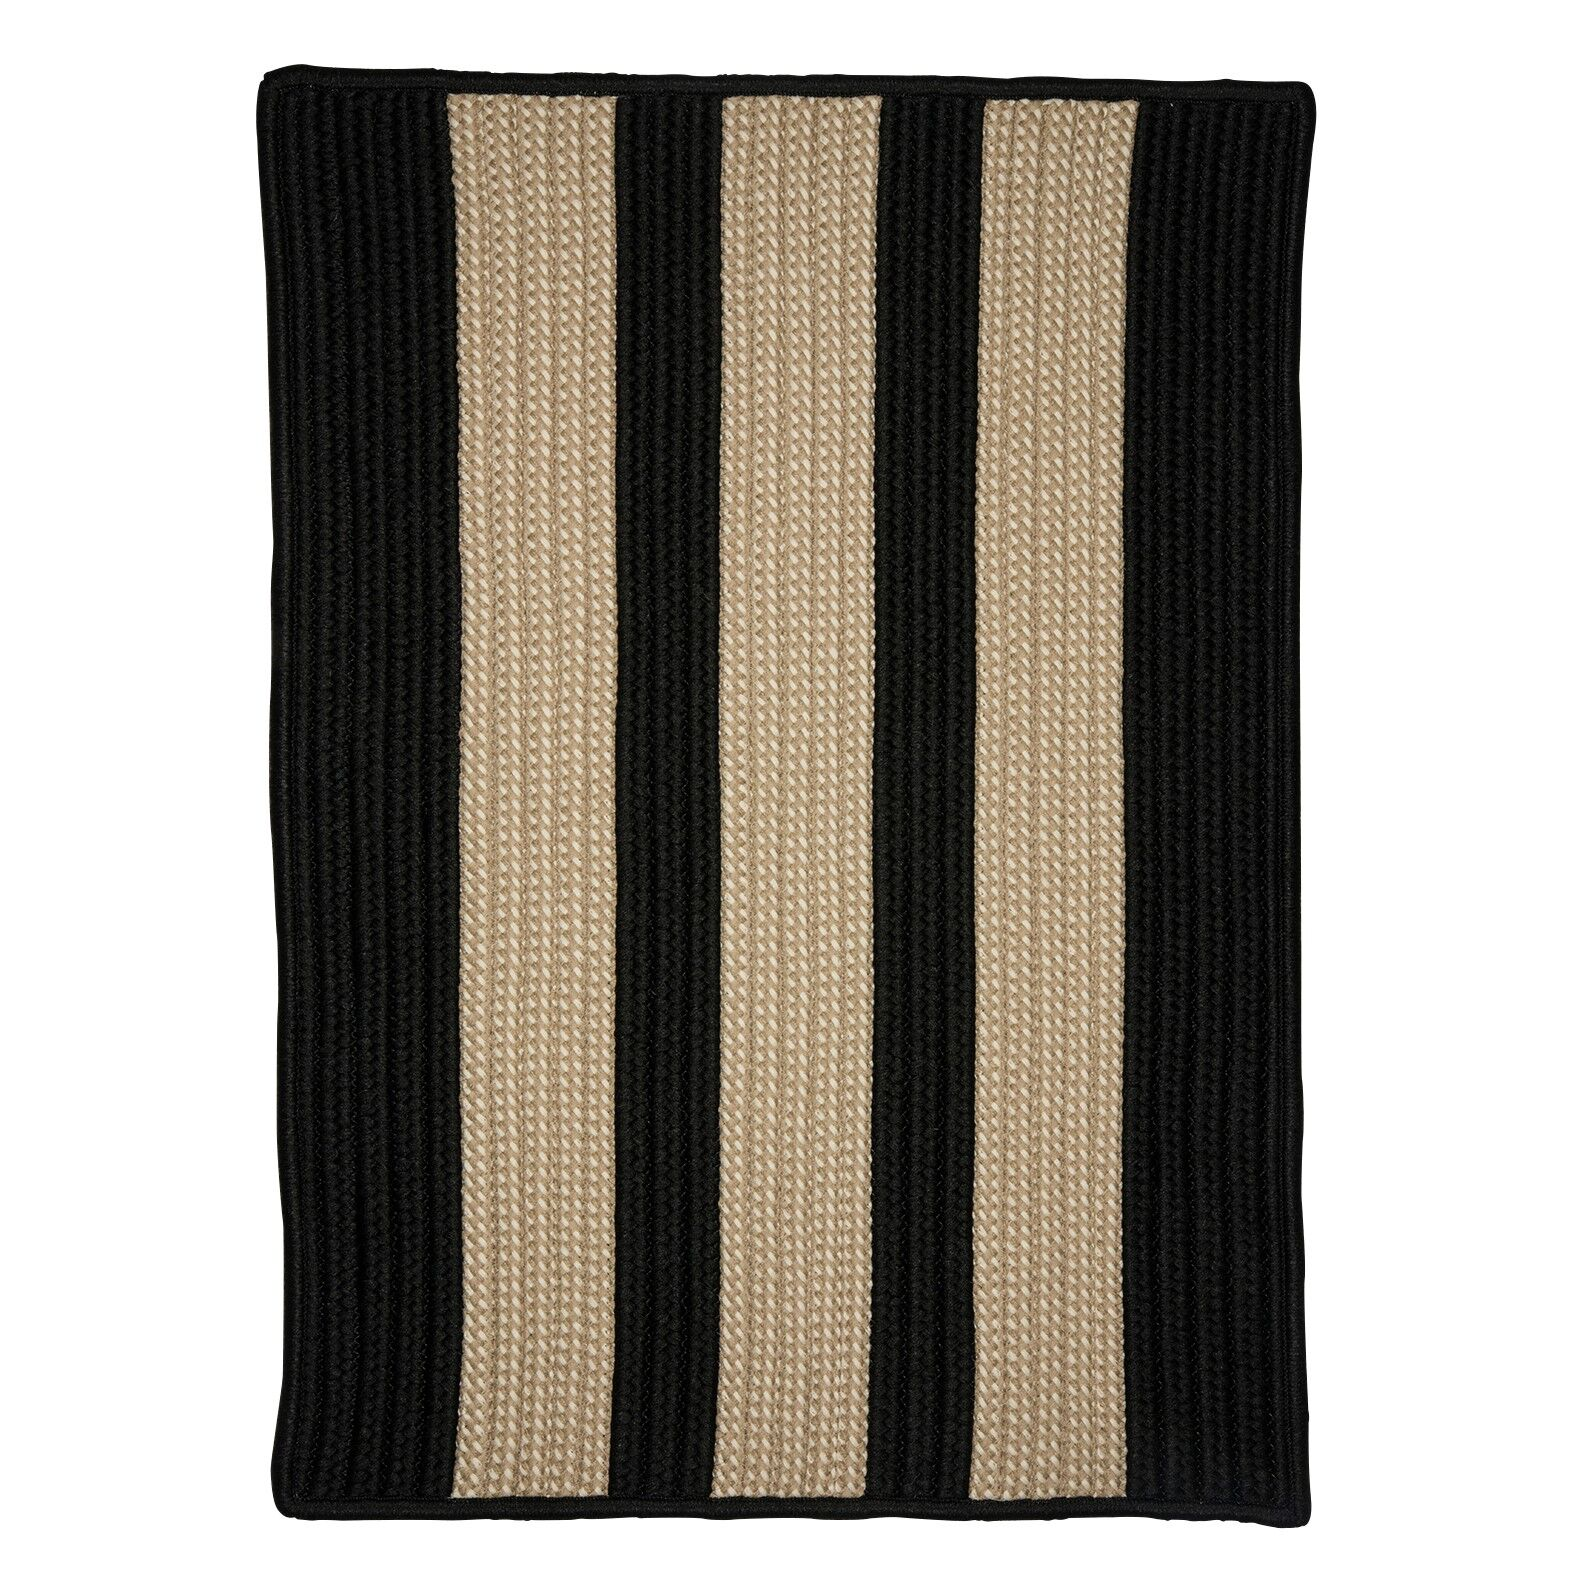 Seal Harbor Hand-Woven Black/Beige Area Rug Rug Size: Square 12'